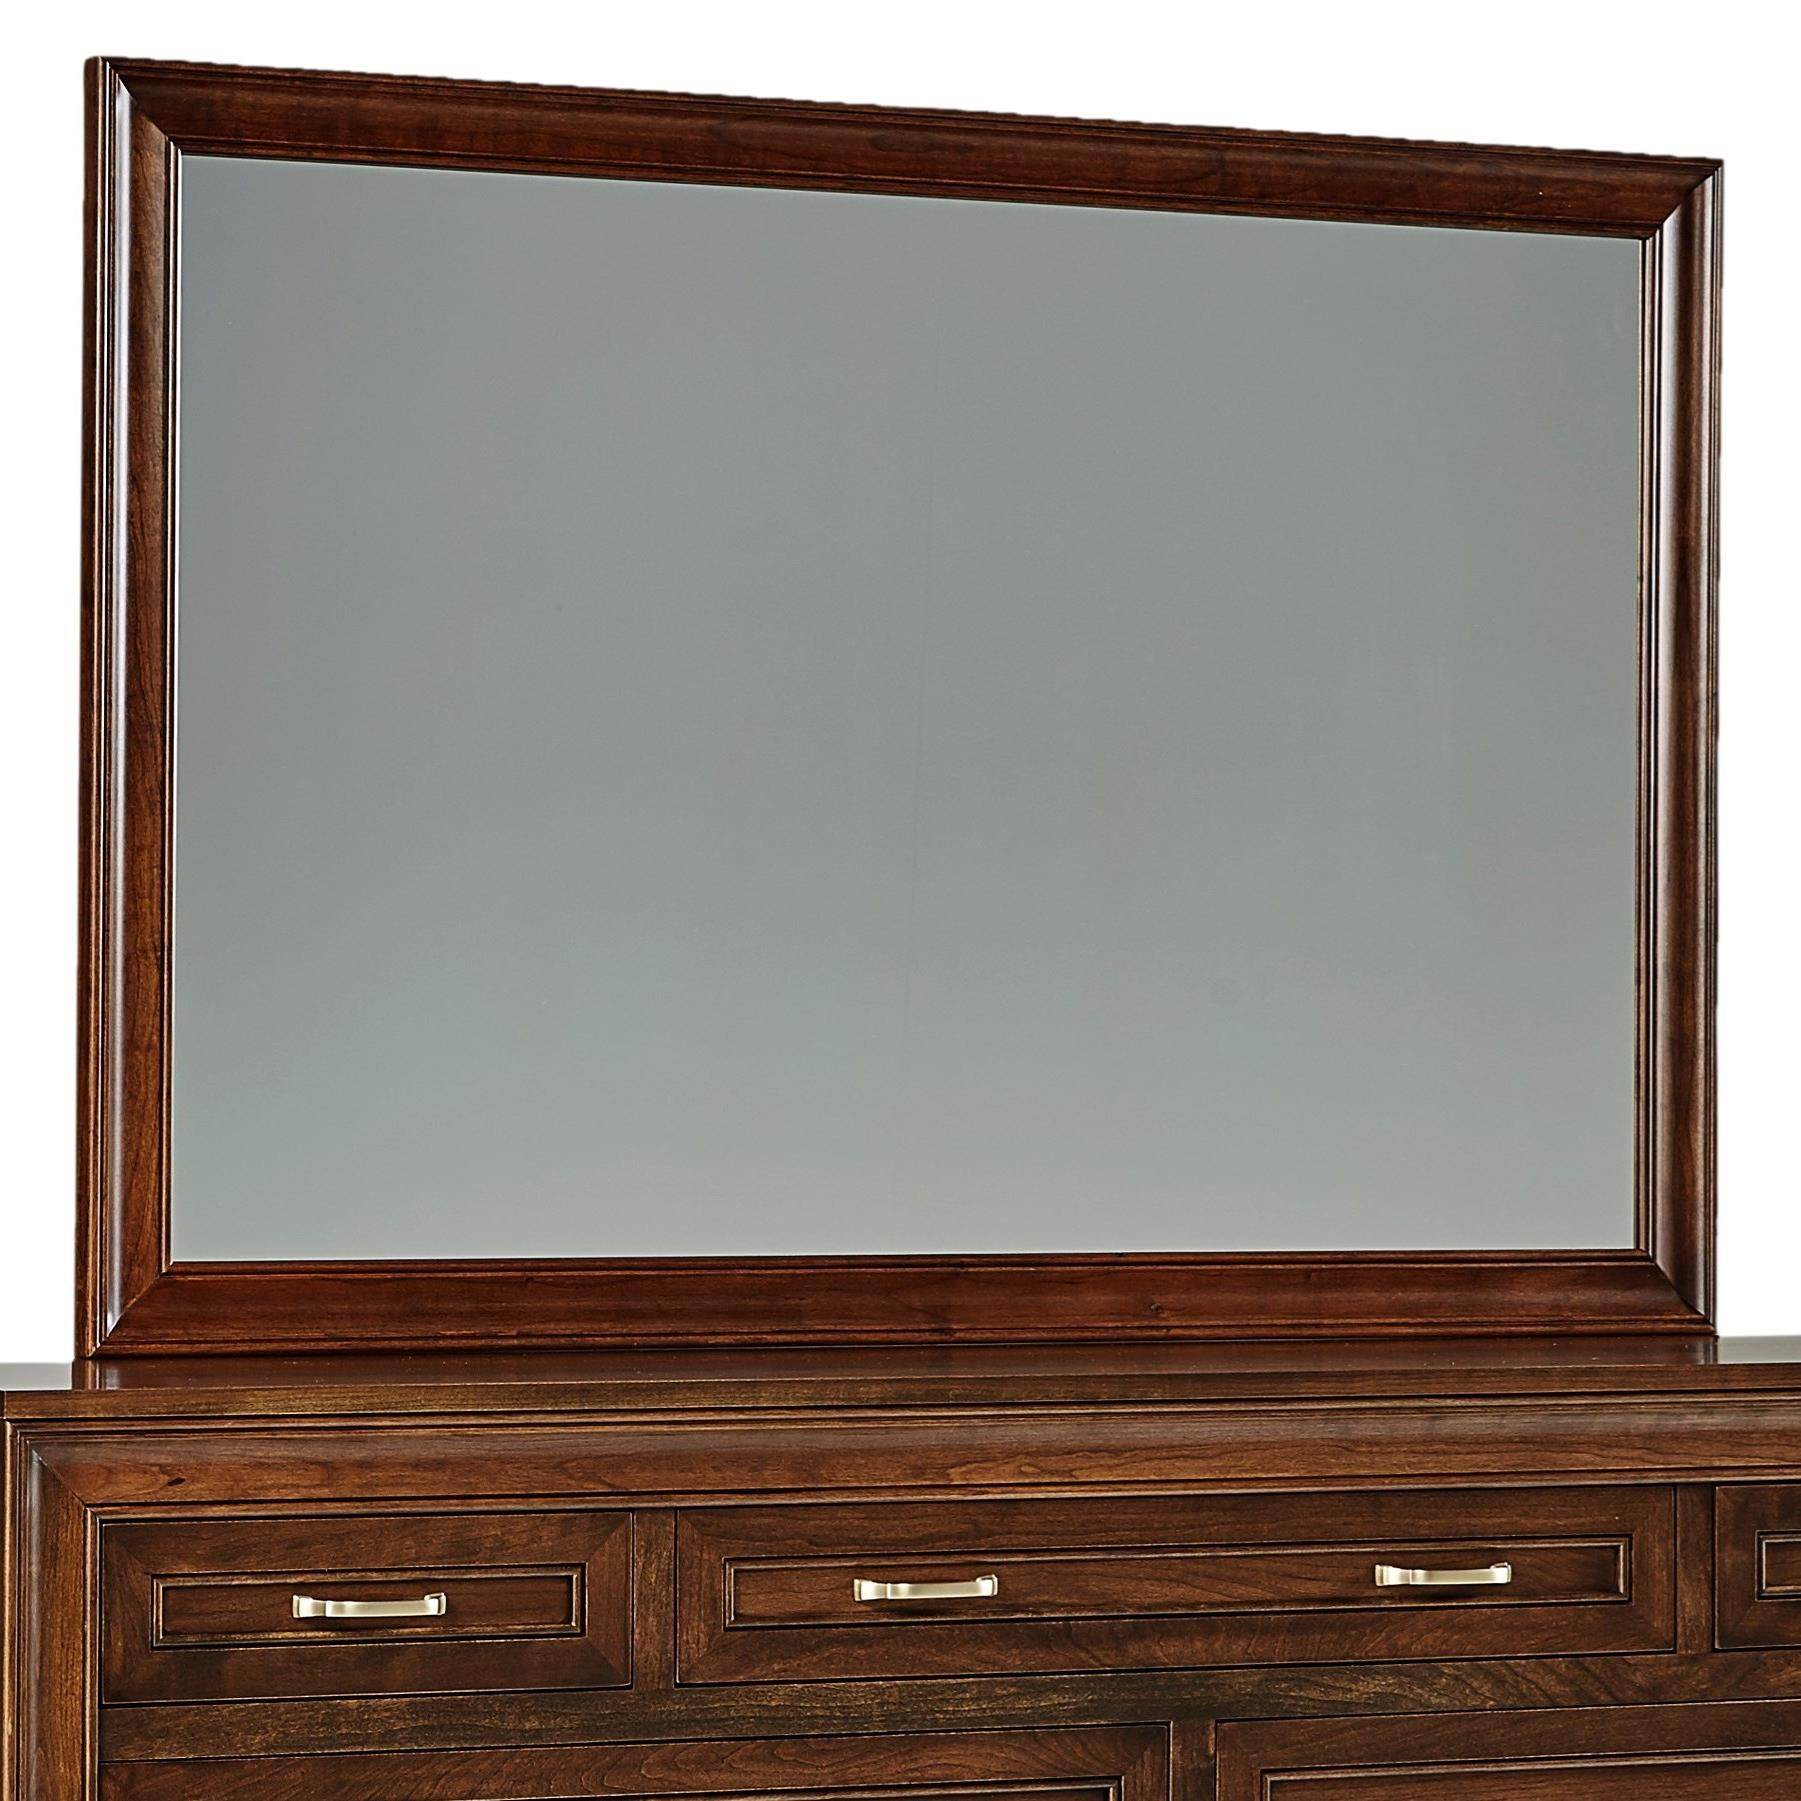 Summerville Tall Wide Mirror by Daniel's Amish at Saugerties Furniture Mart